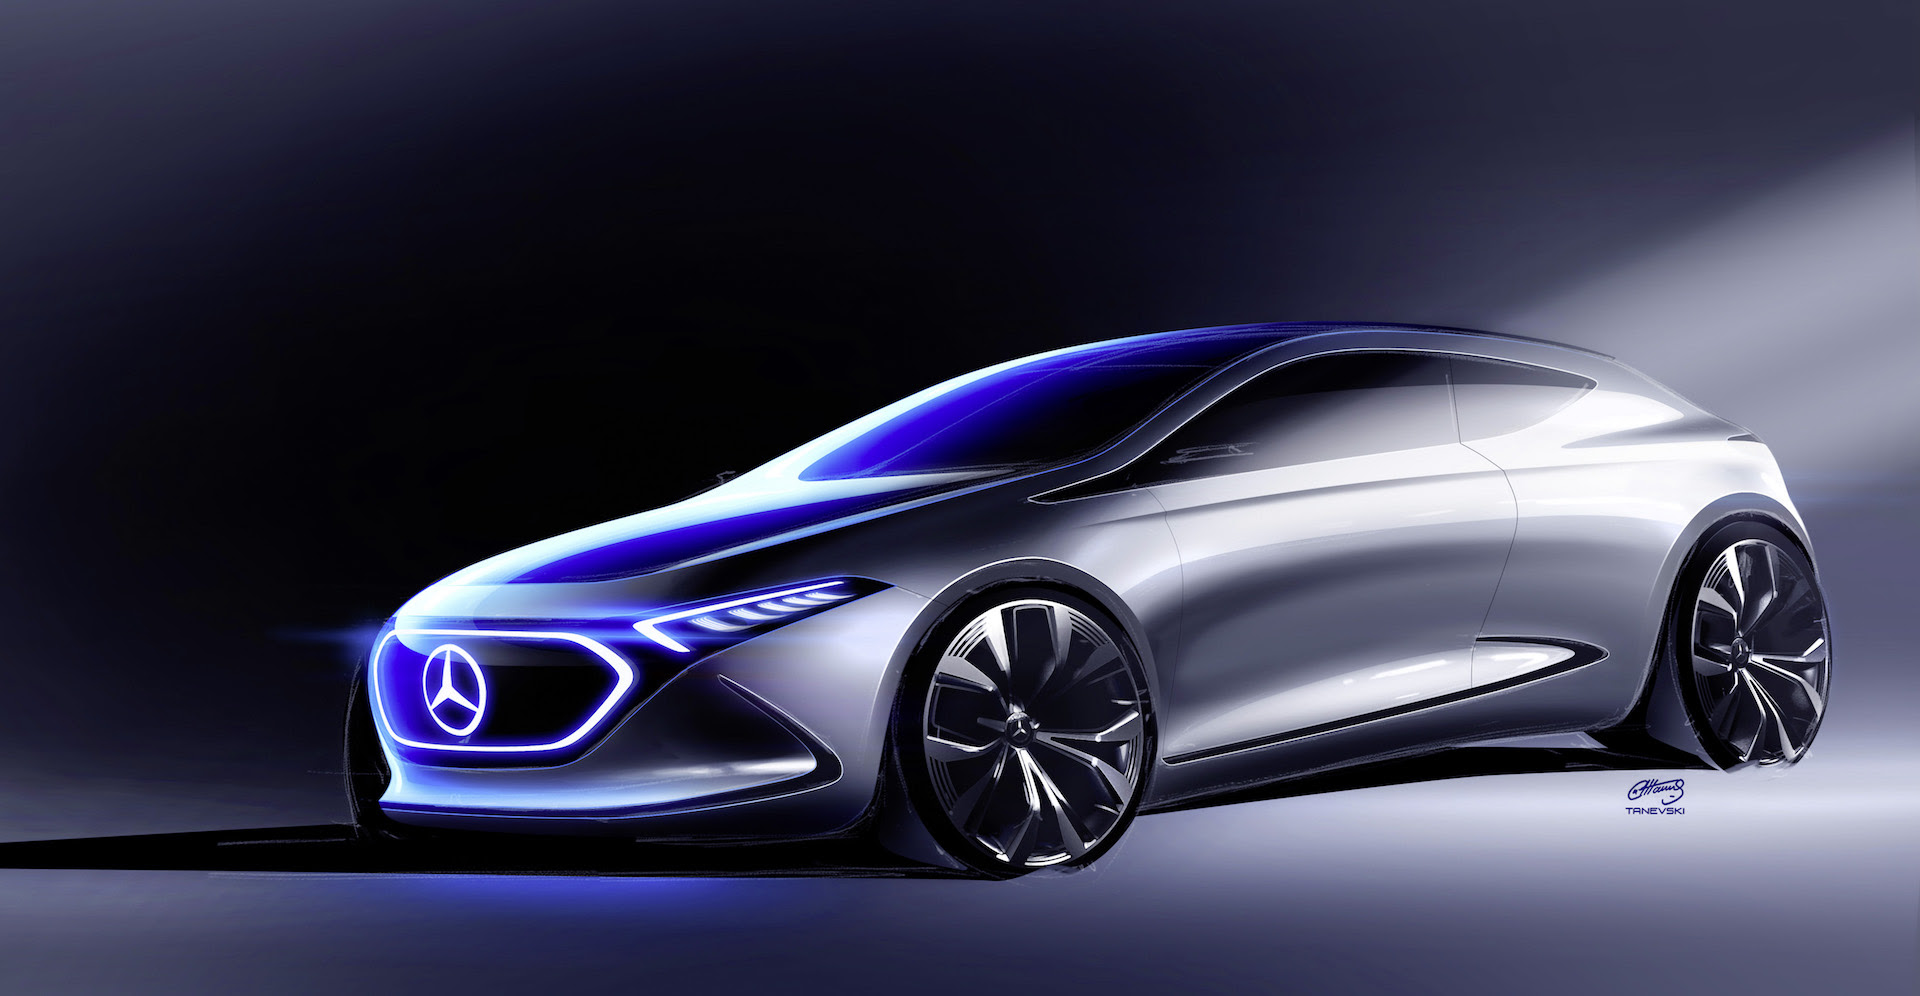 Latest image shows shape of Mercedes EQA compact electric ...